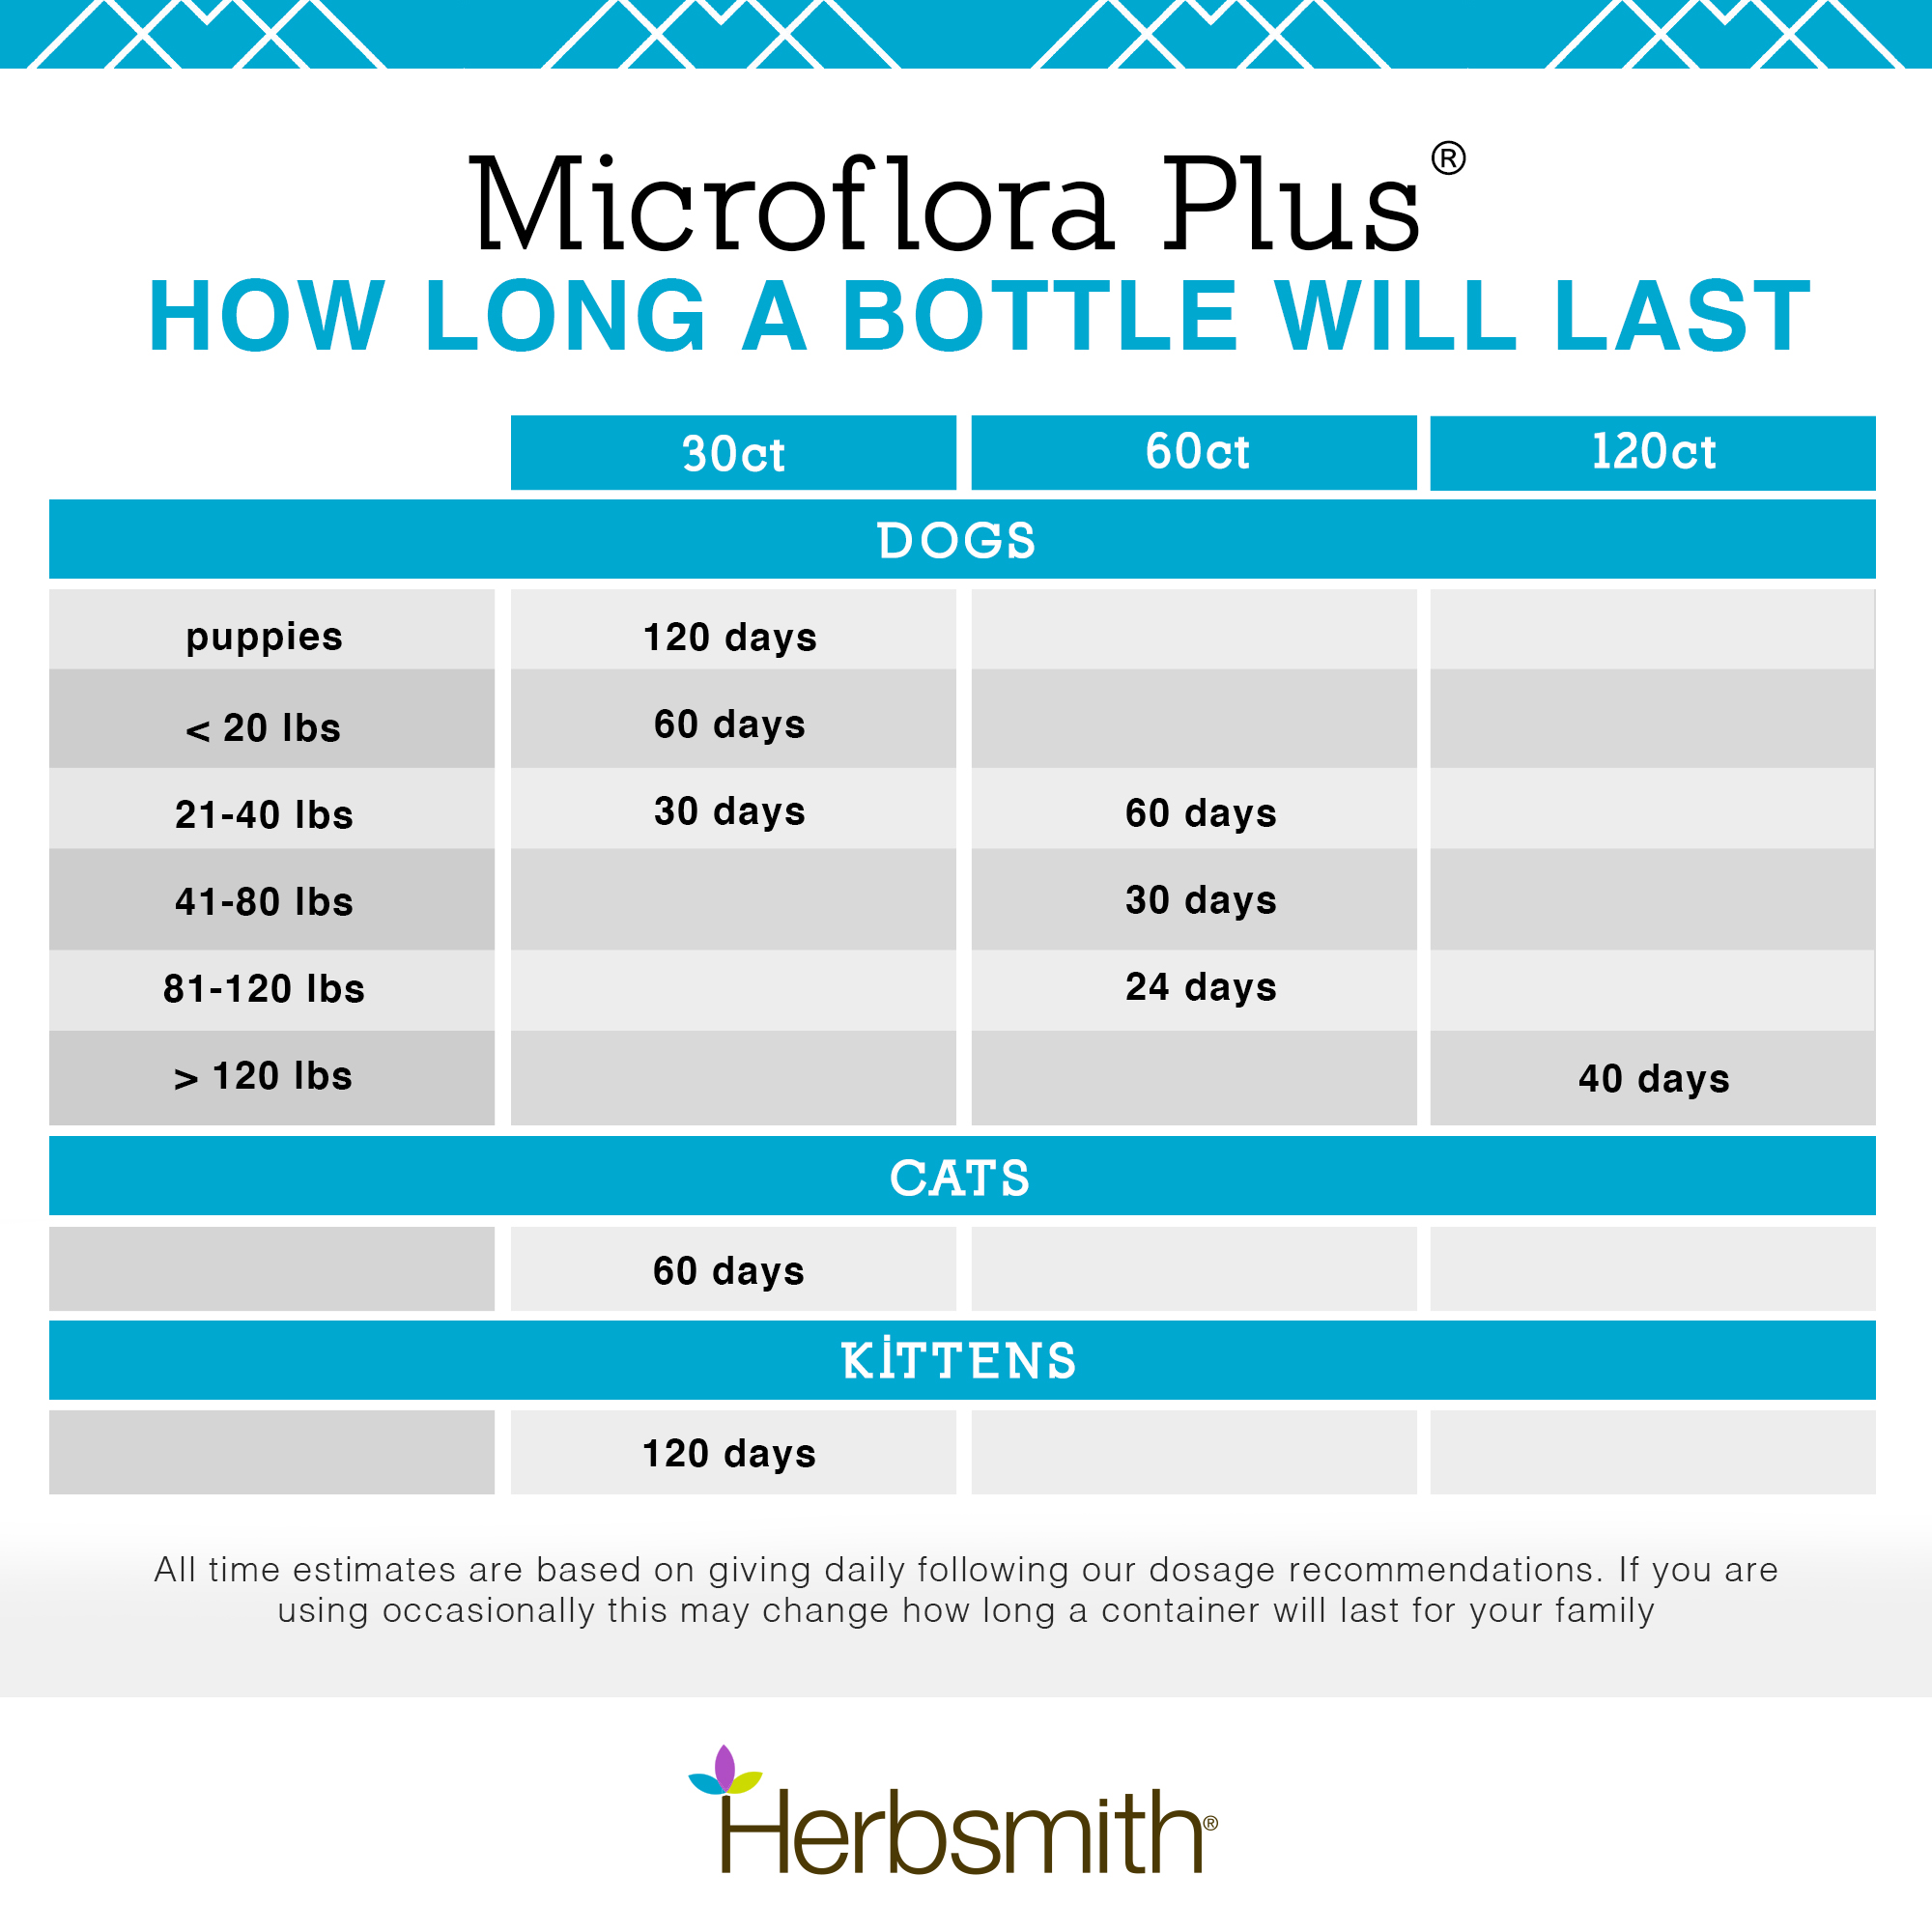 herbsmith-amazon-art-files-microflora-plus-final-update-late-2020-dosage-Final